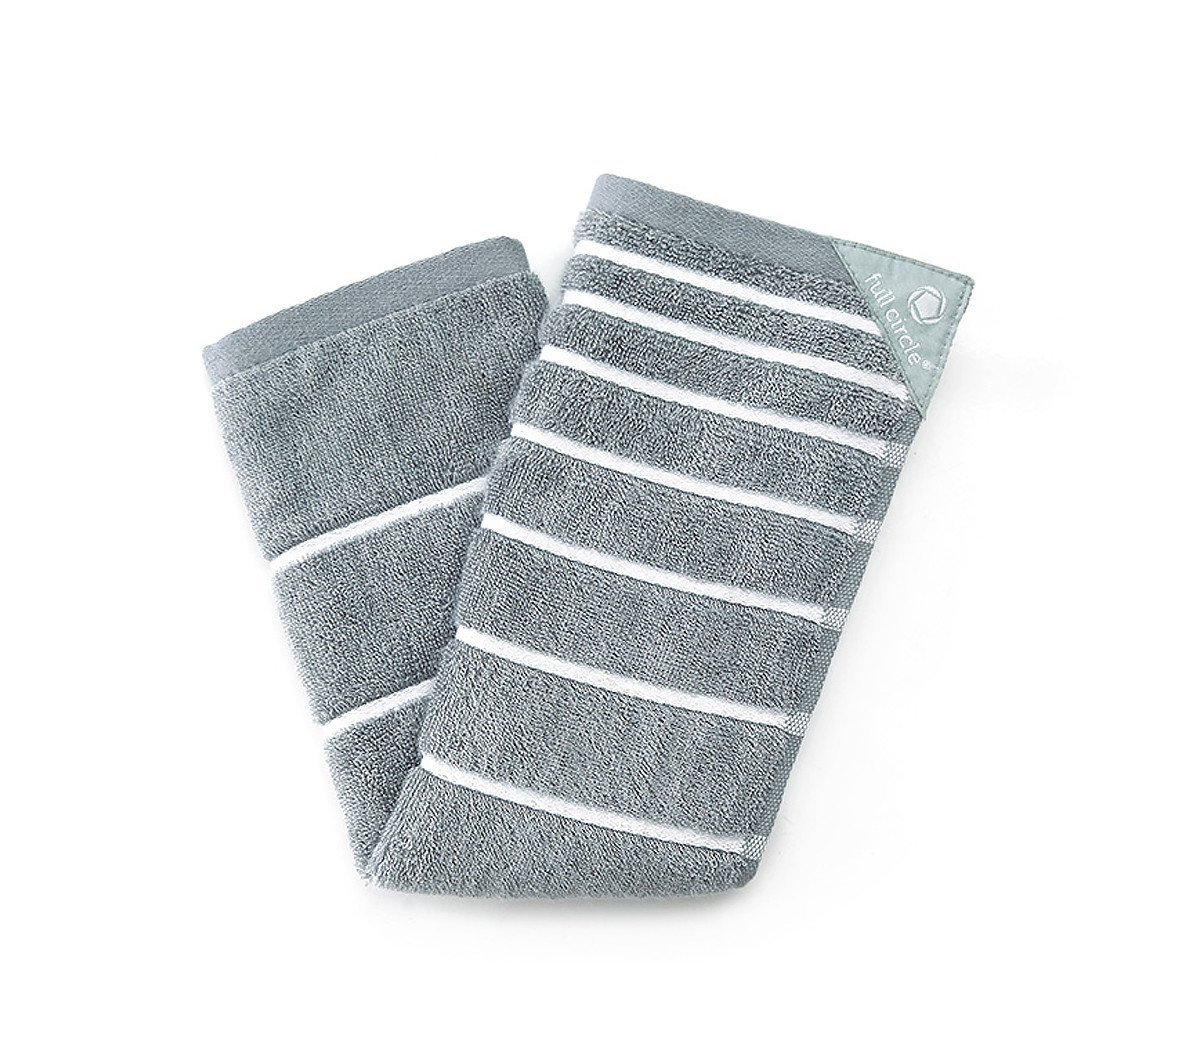 Full Circle Stick 'Em Handy Kitchen Towel Grey